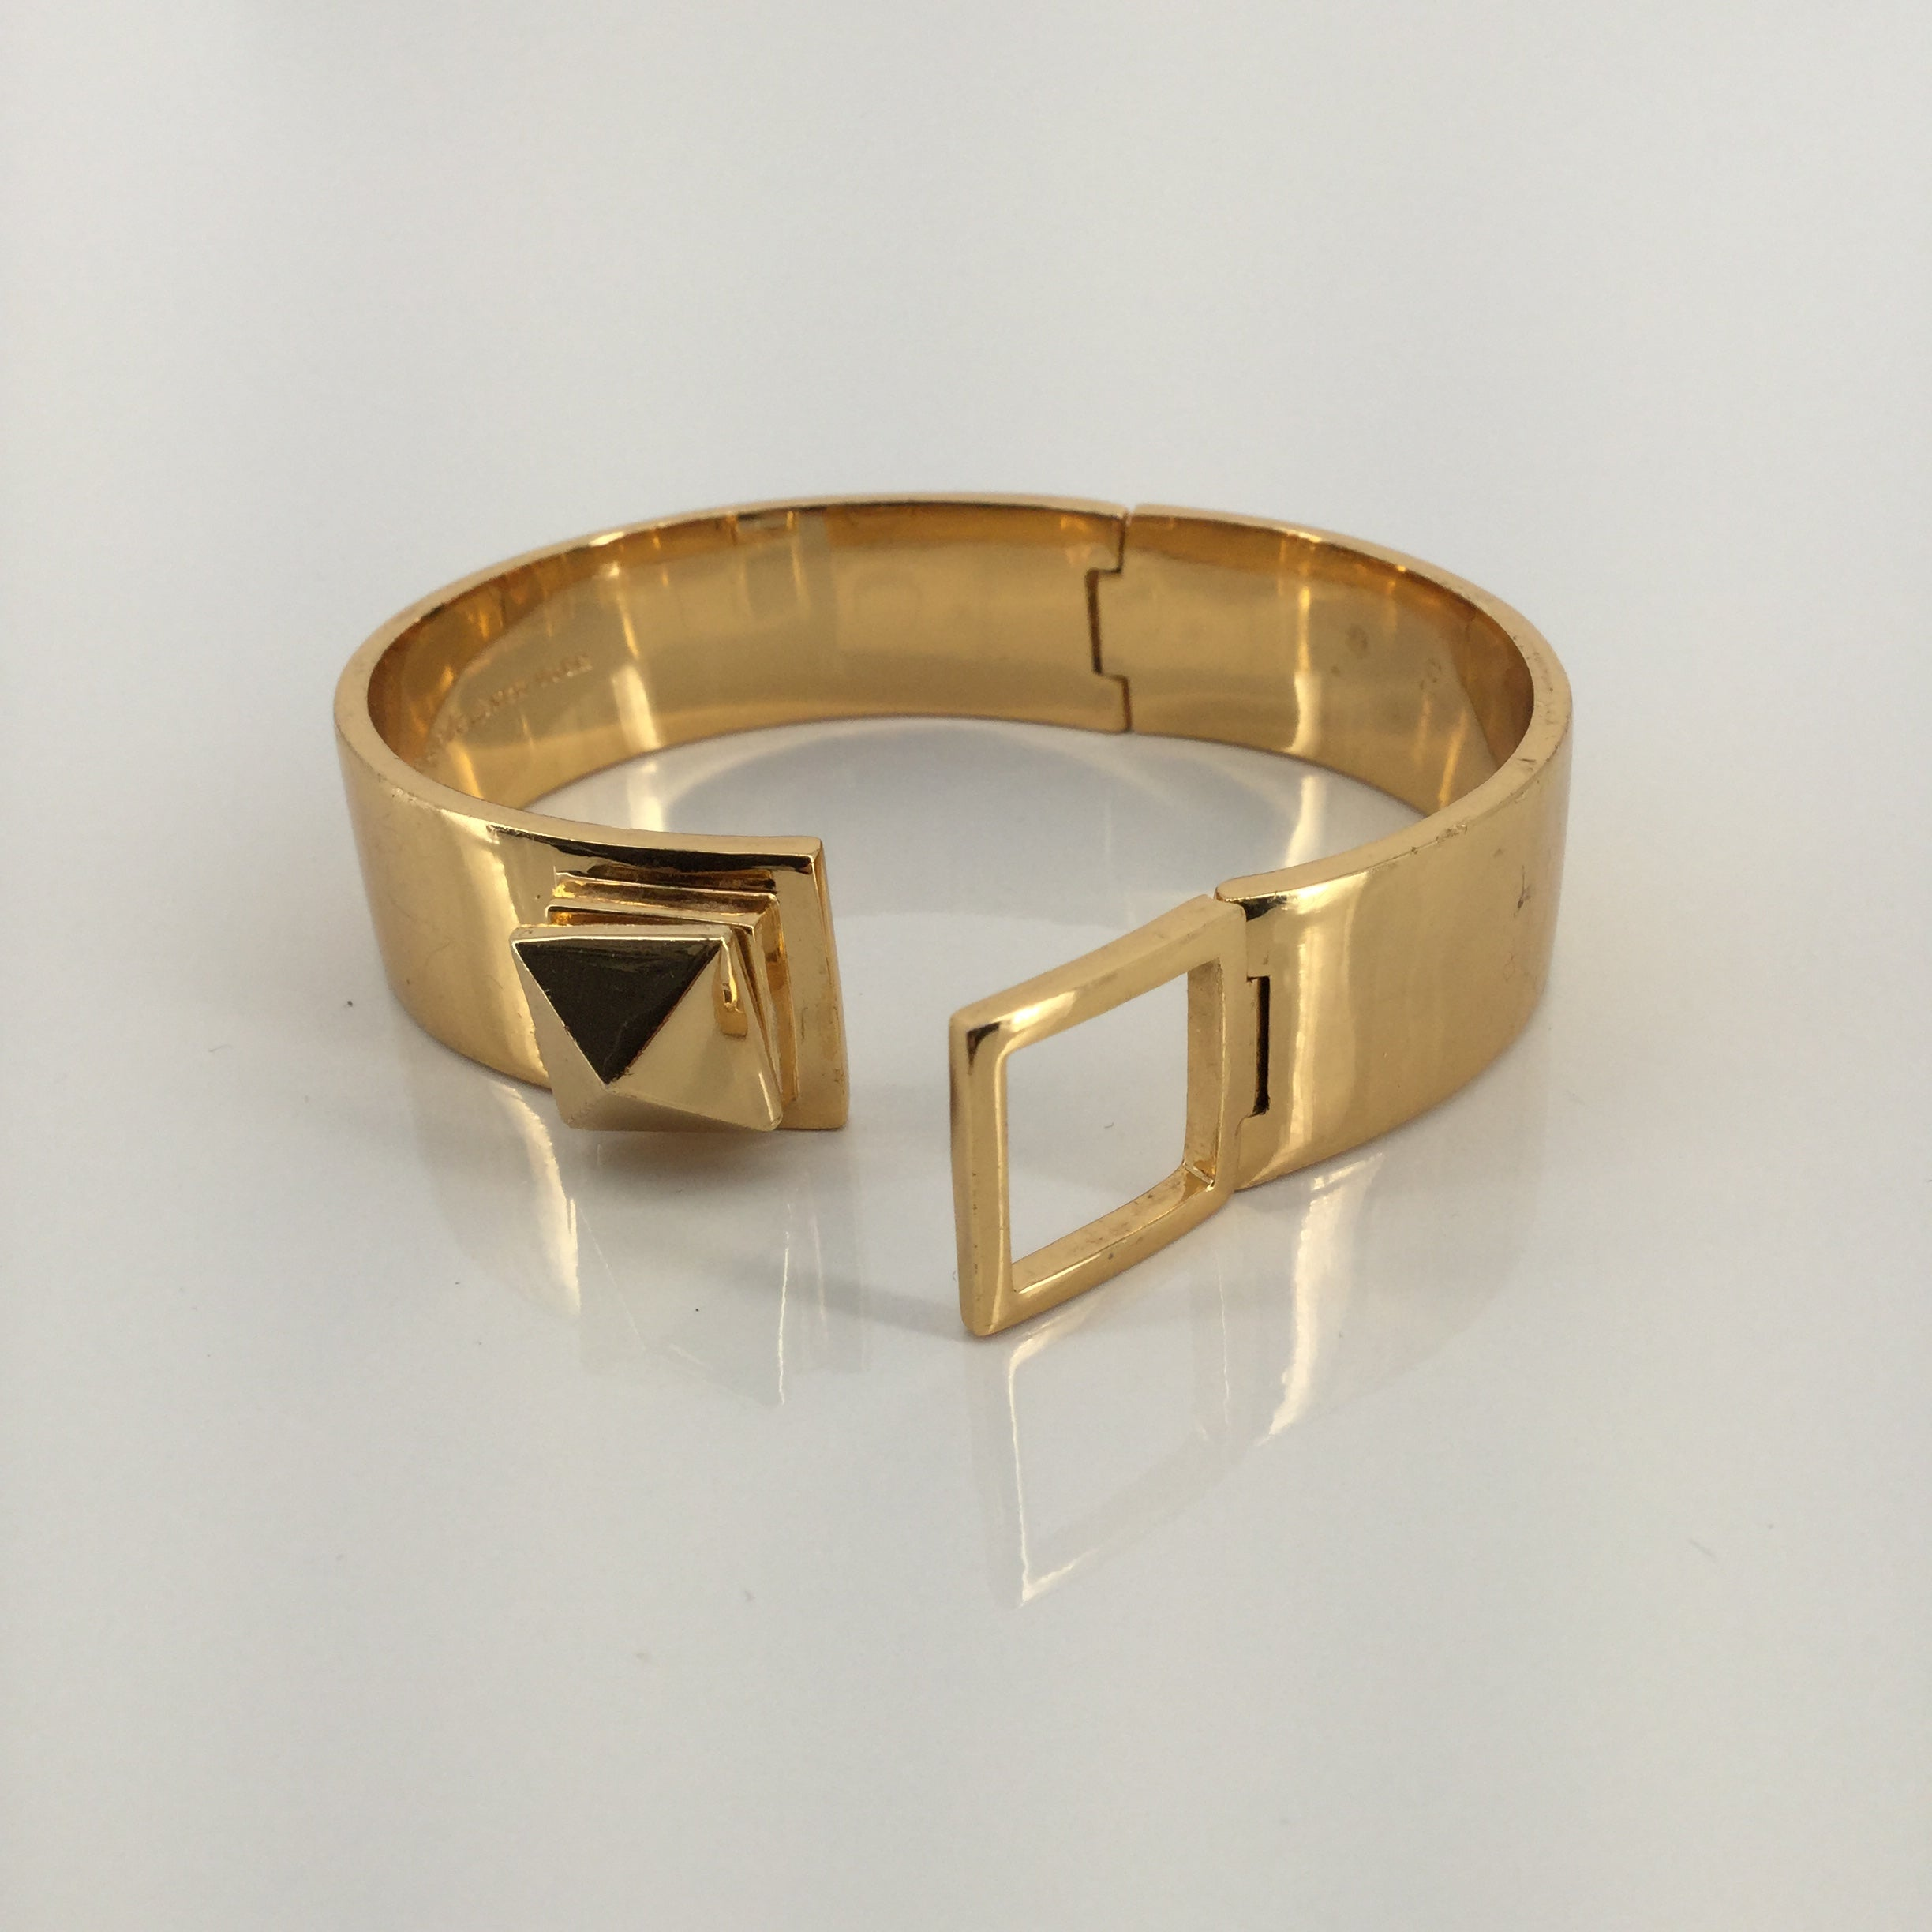 JEWELRY, - GOLD BRACELET WITH SQUARE TURN CLOSURE SLIGHT SCRATCHES ON OUTSIDE COMES WITH DUST BAG